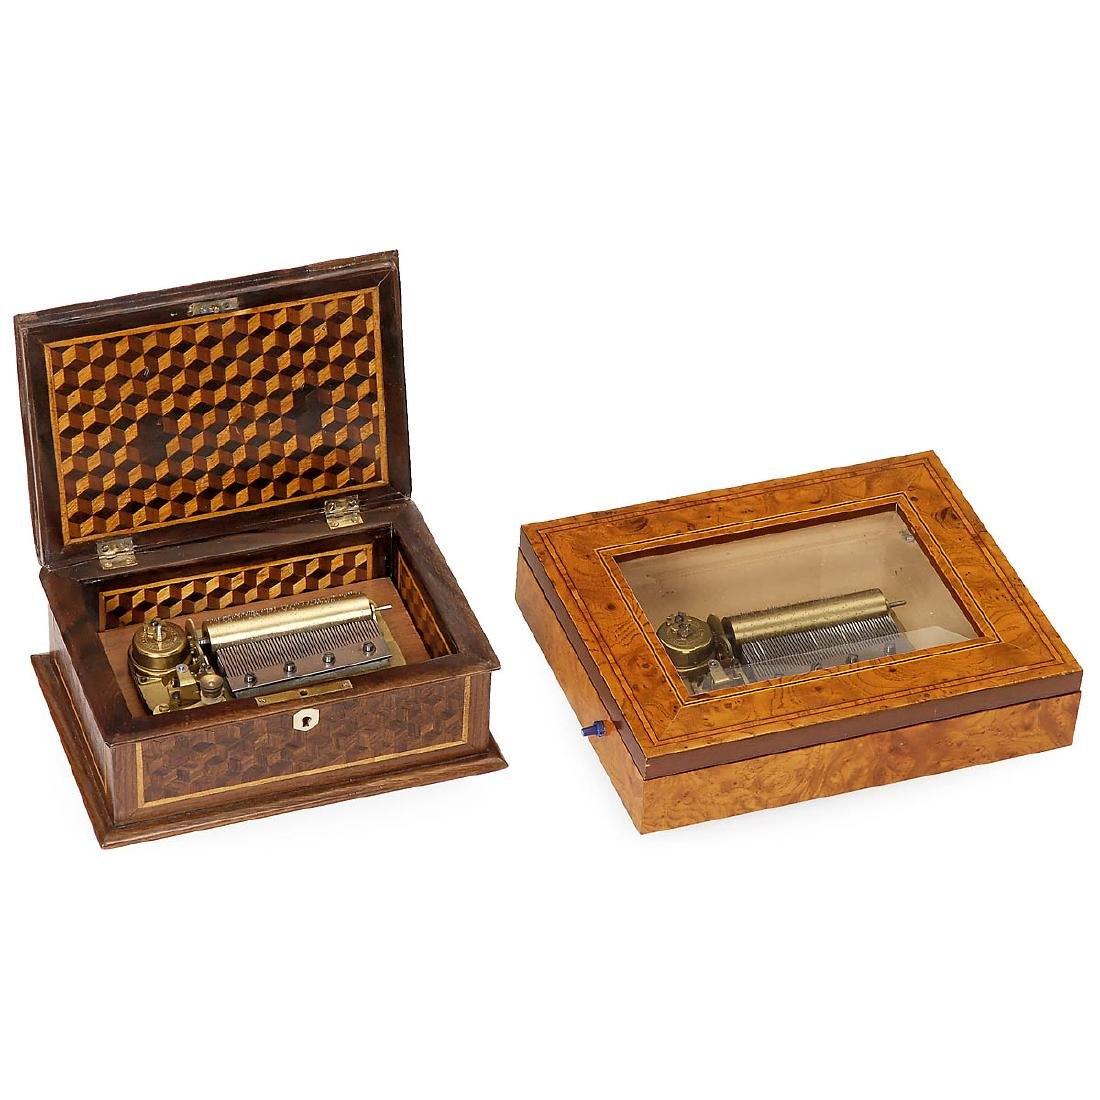 2 Musical Boxes by Jules Cuendet, 20th Century